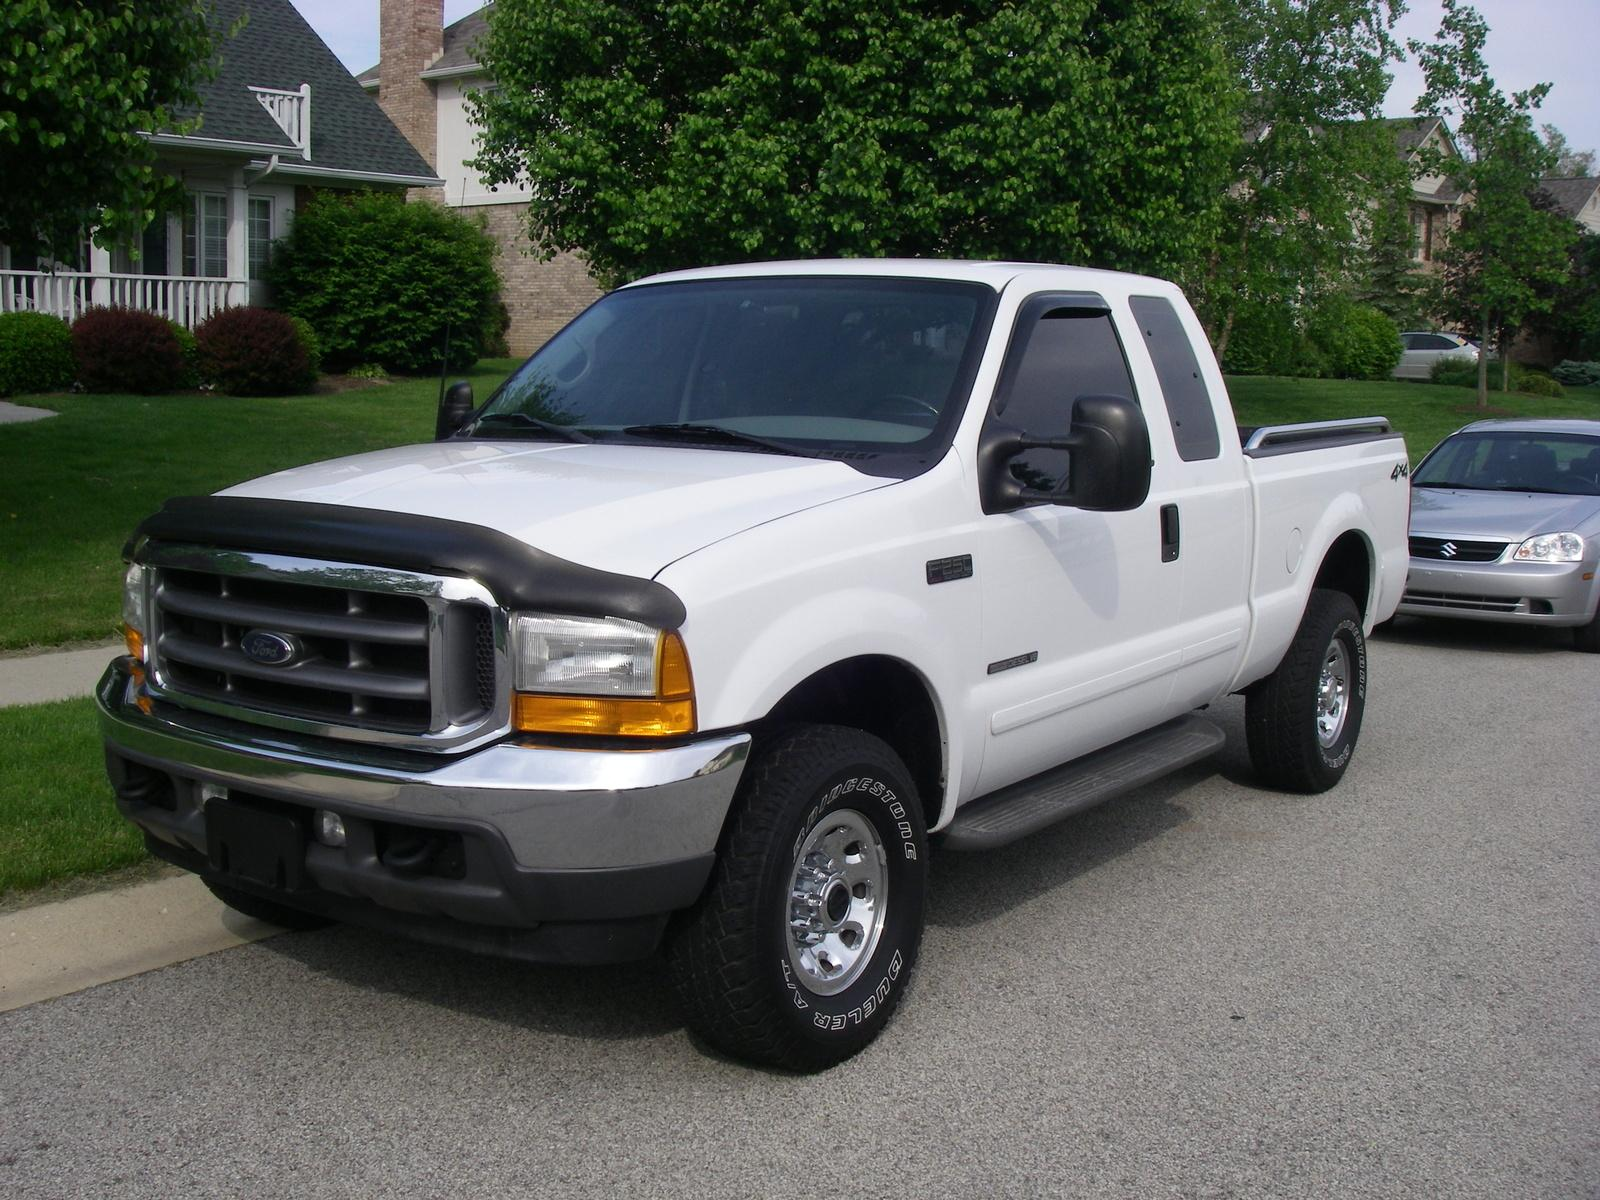 2003 ford f 250 super duty information and photos. Black Bedroom Furniture Sets. Home Design Ideas